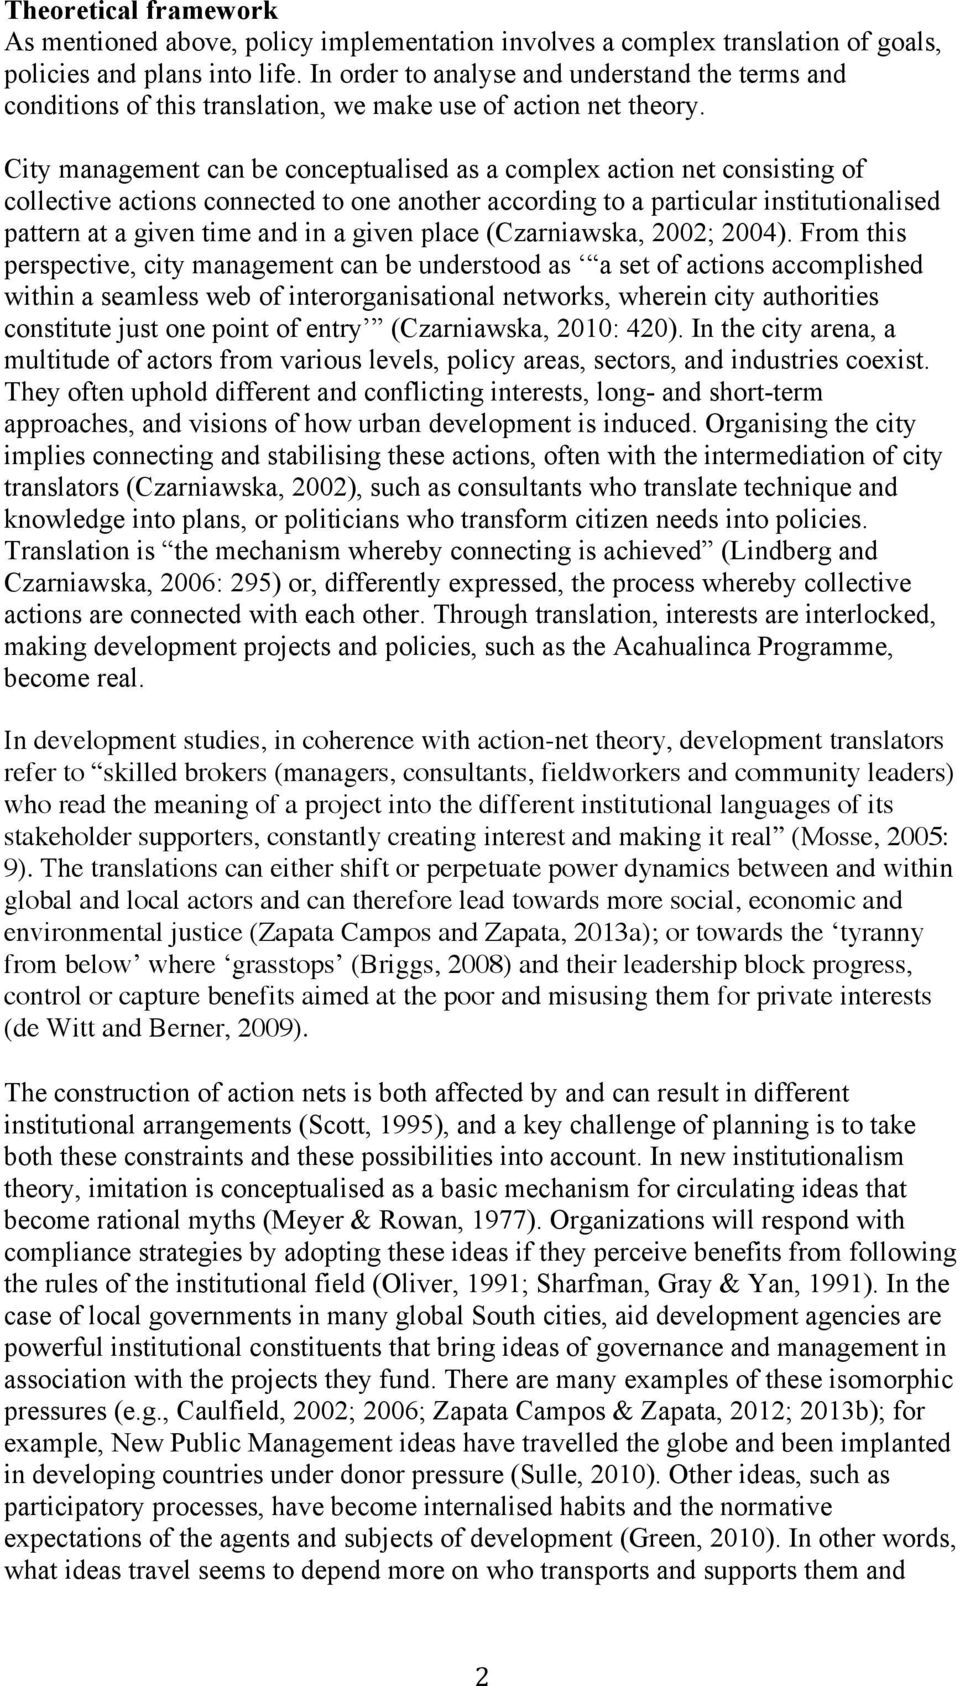 City management can be conceptualised as a complex action net consisting of collective actions connected to one another according to a particular institutionalised pattern at a given time and in a